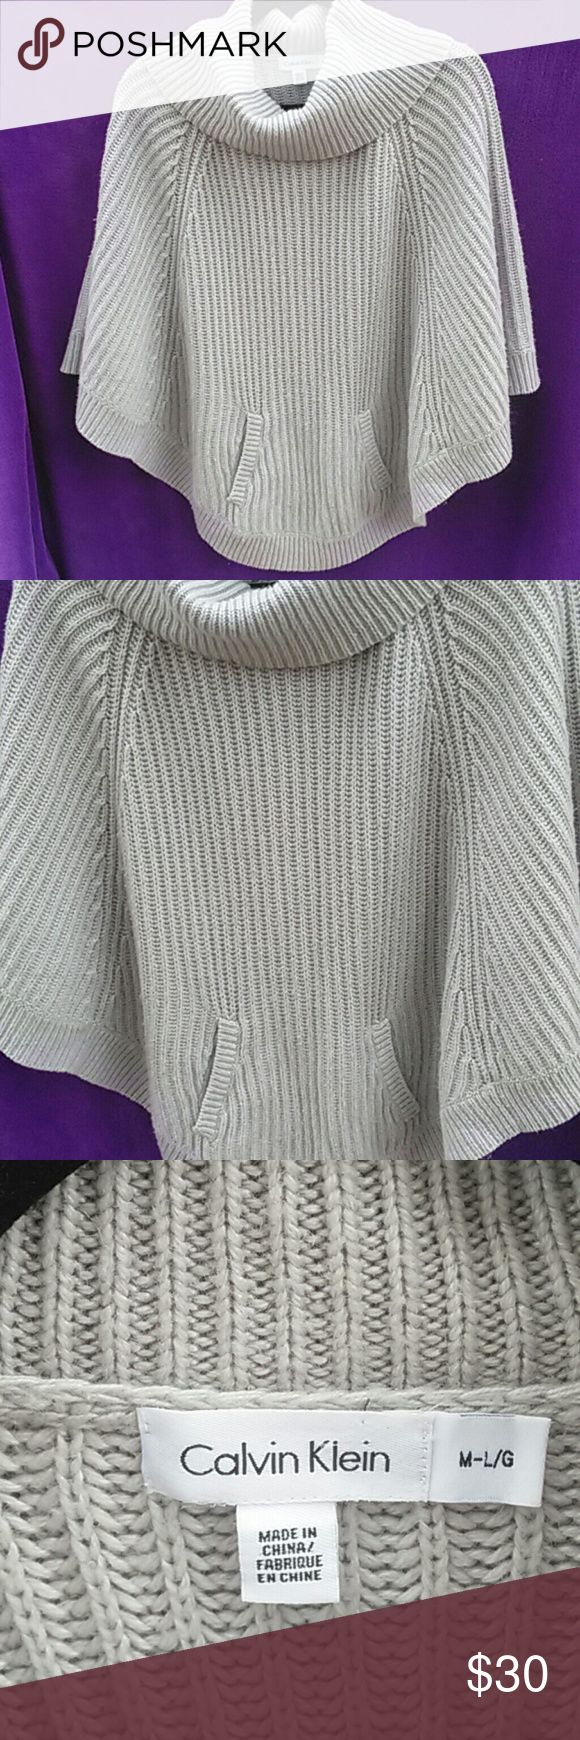 Calvin Klein poncho with closure buttons Calvin Klein poncho with closure buttons on lower left and right for closure as desired. Pre-owned and inspected for sign of wear. Now $21 down from $27!!!!! Calvin Klein Sweaters Shrugs & Ponchos